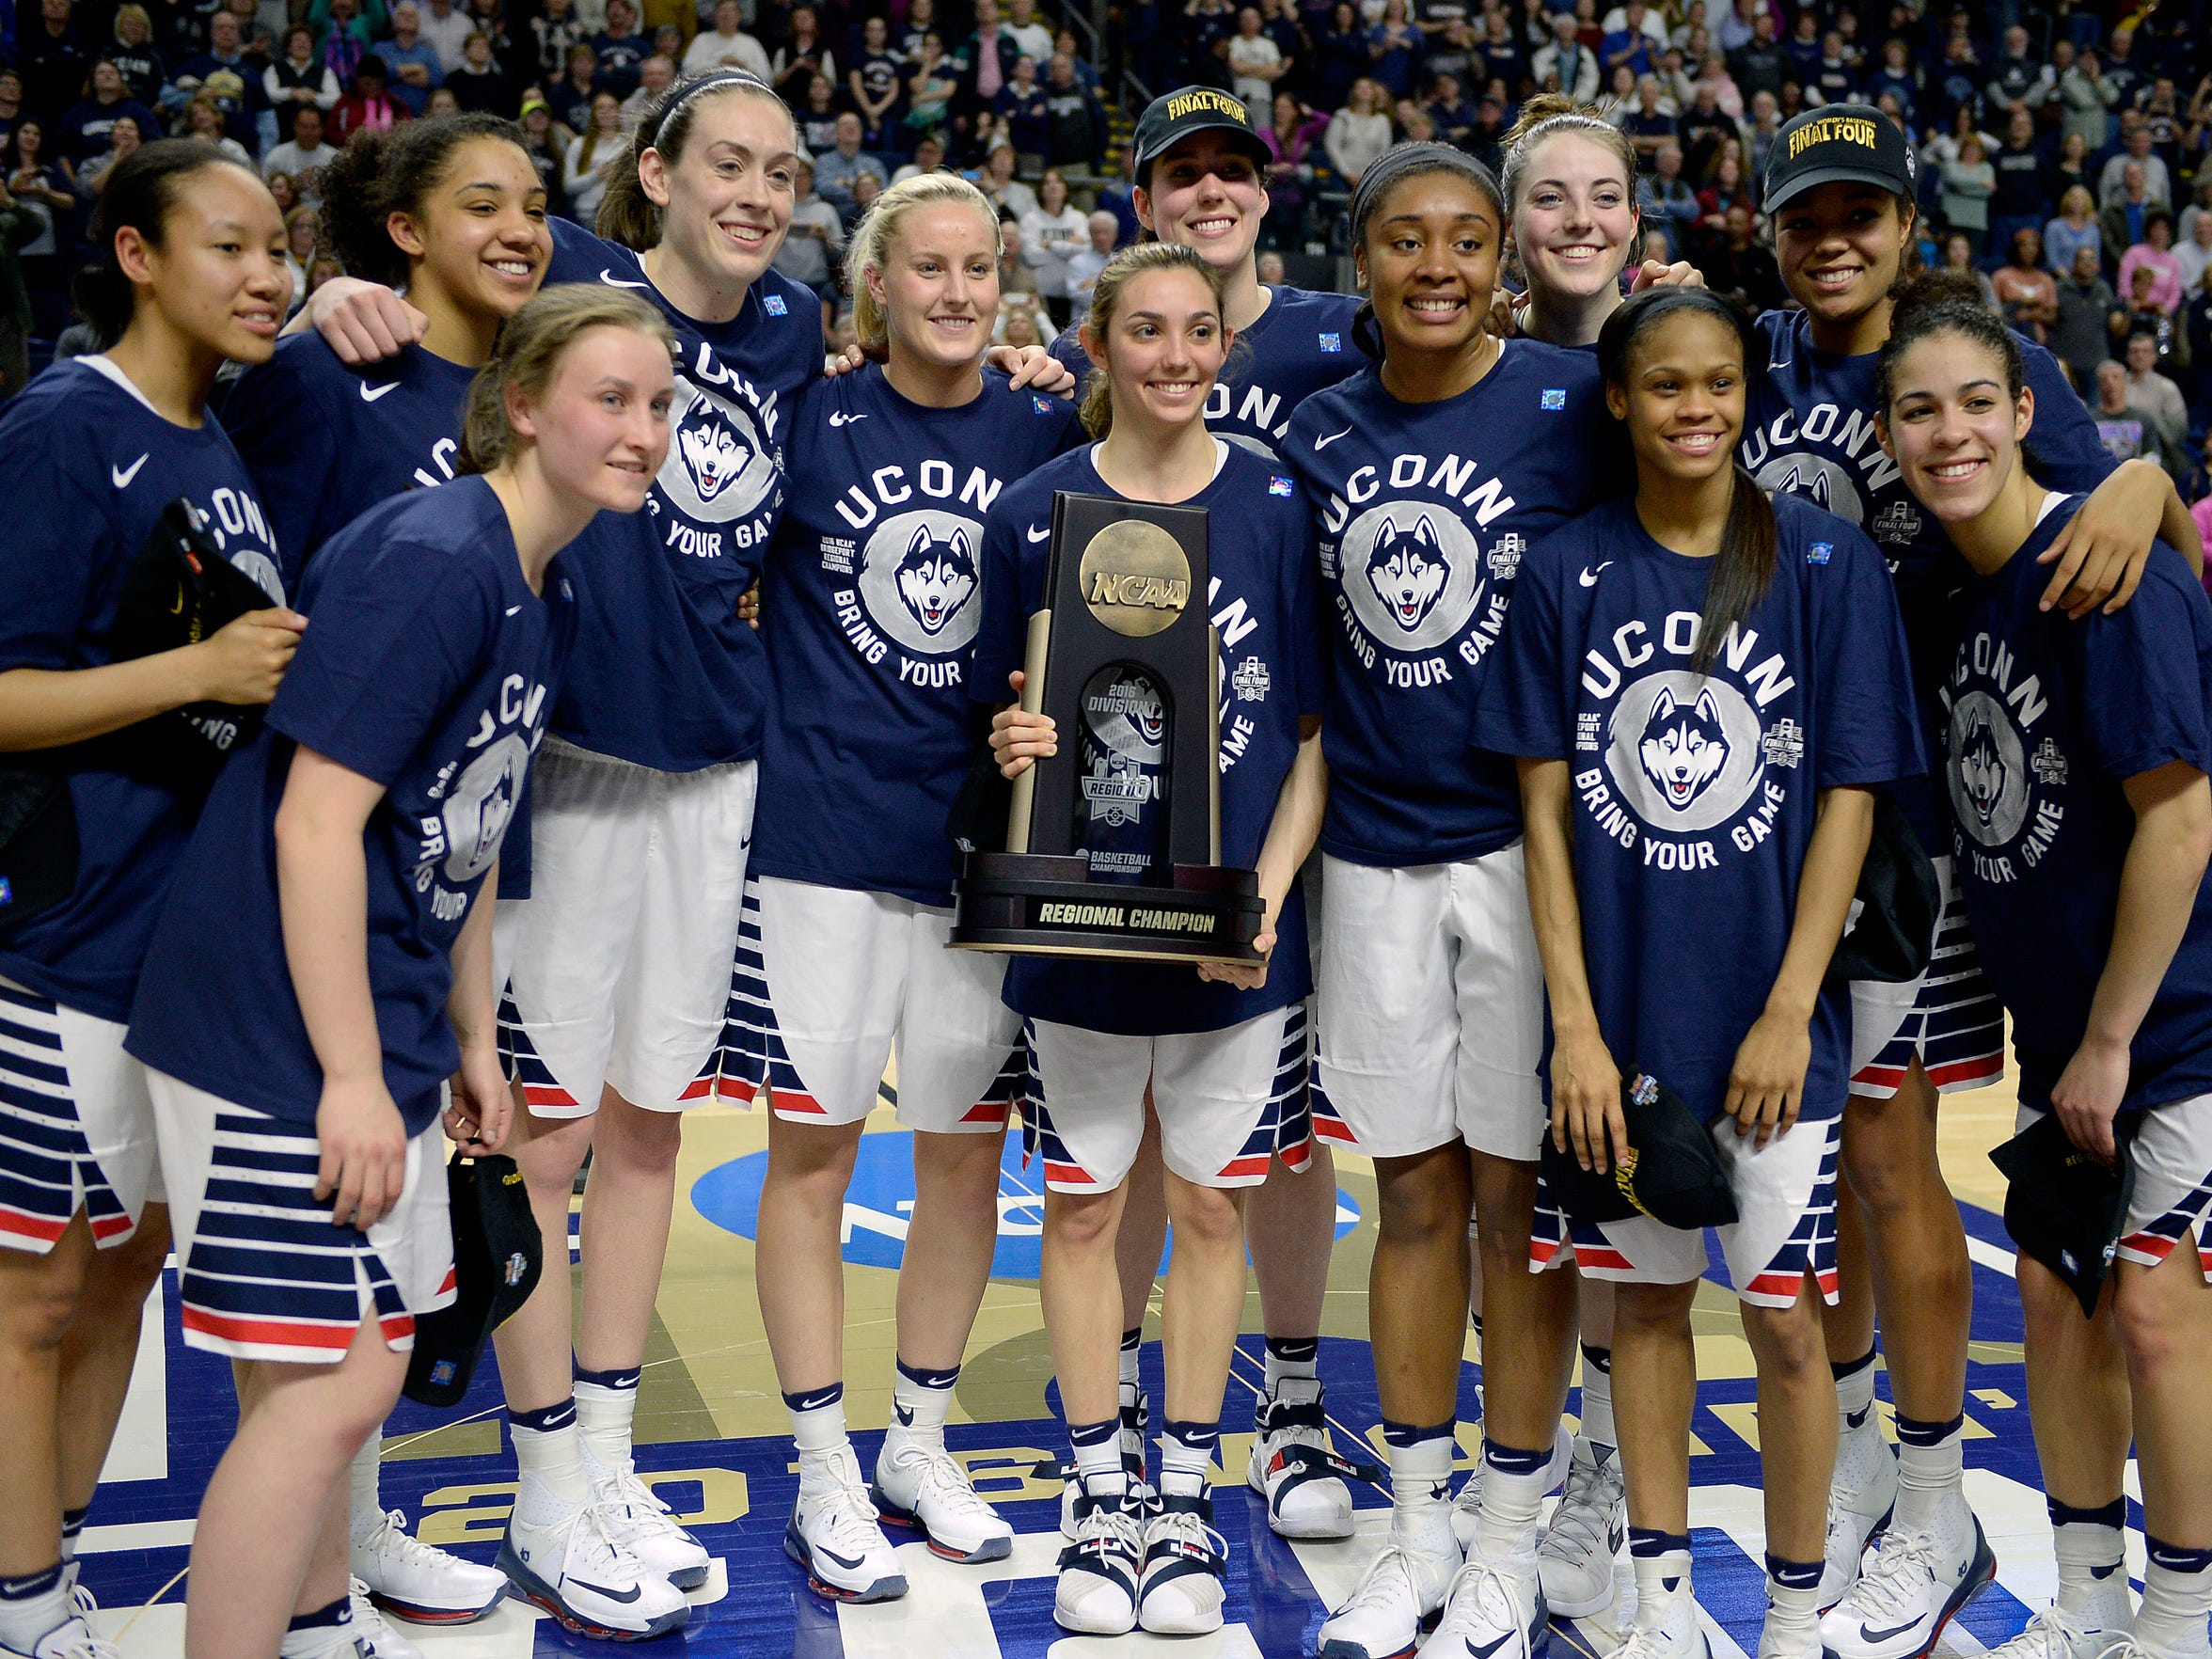 Connecticut''s Briana Pulido holds the trophy as the team poses after winning 86-65 over Texas in a college basketball game in the regional final of the women's NCAA Tournament, Monday, March 28, 2016, in Bridgeport, Conn.